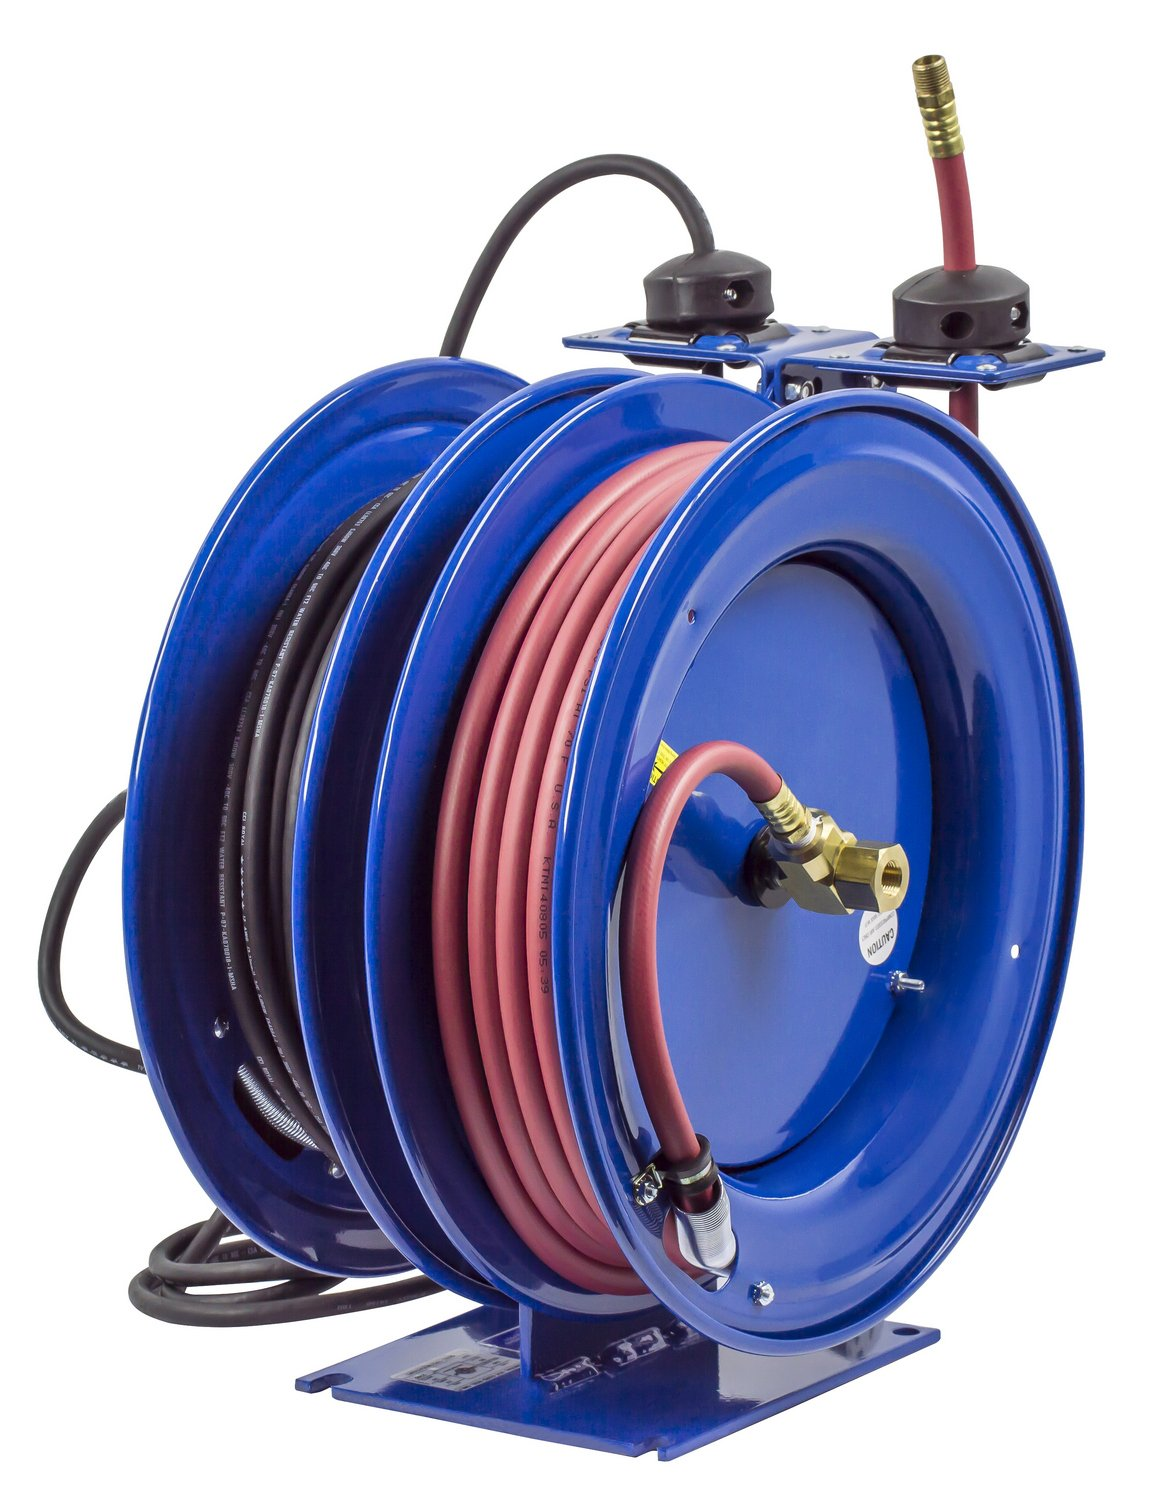 Coxreels C-L350-5012-B Combo Air and Electric Hose Reel with Quad Outlet Attachment, 3/8'' Hose ID, 50' Length by Coxreels (Image #4)